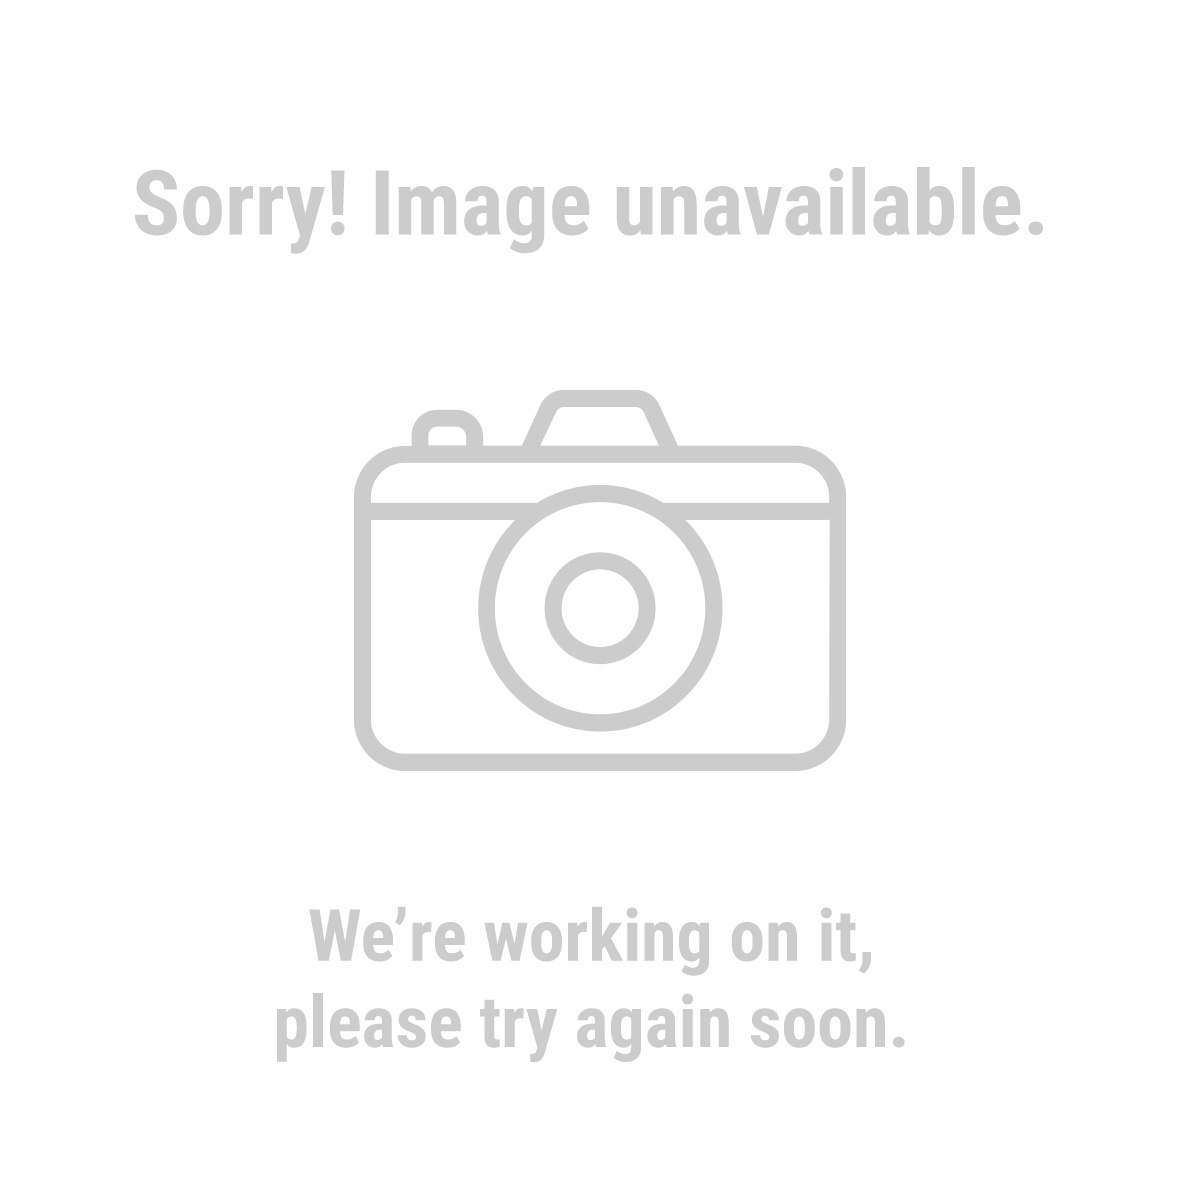 HFT® 96710 25 Ft. 12 Gauge Triple Tap Extension Cord with Indicator Light